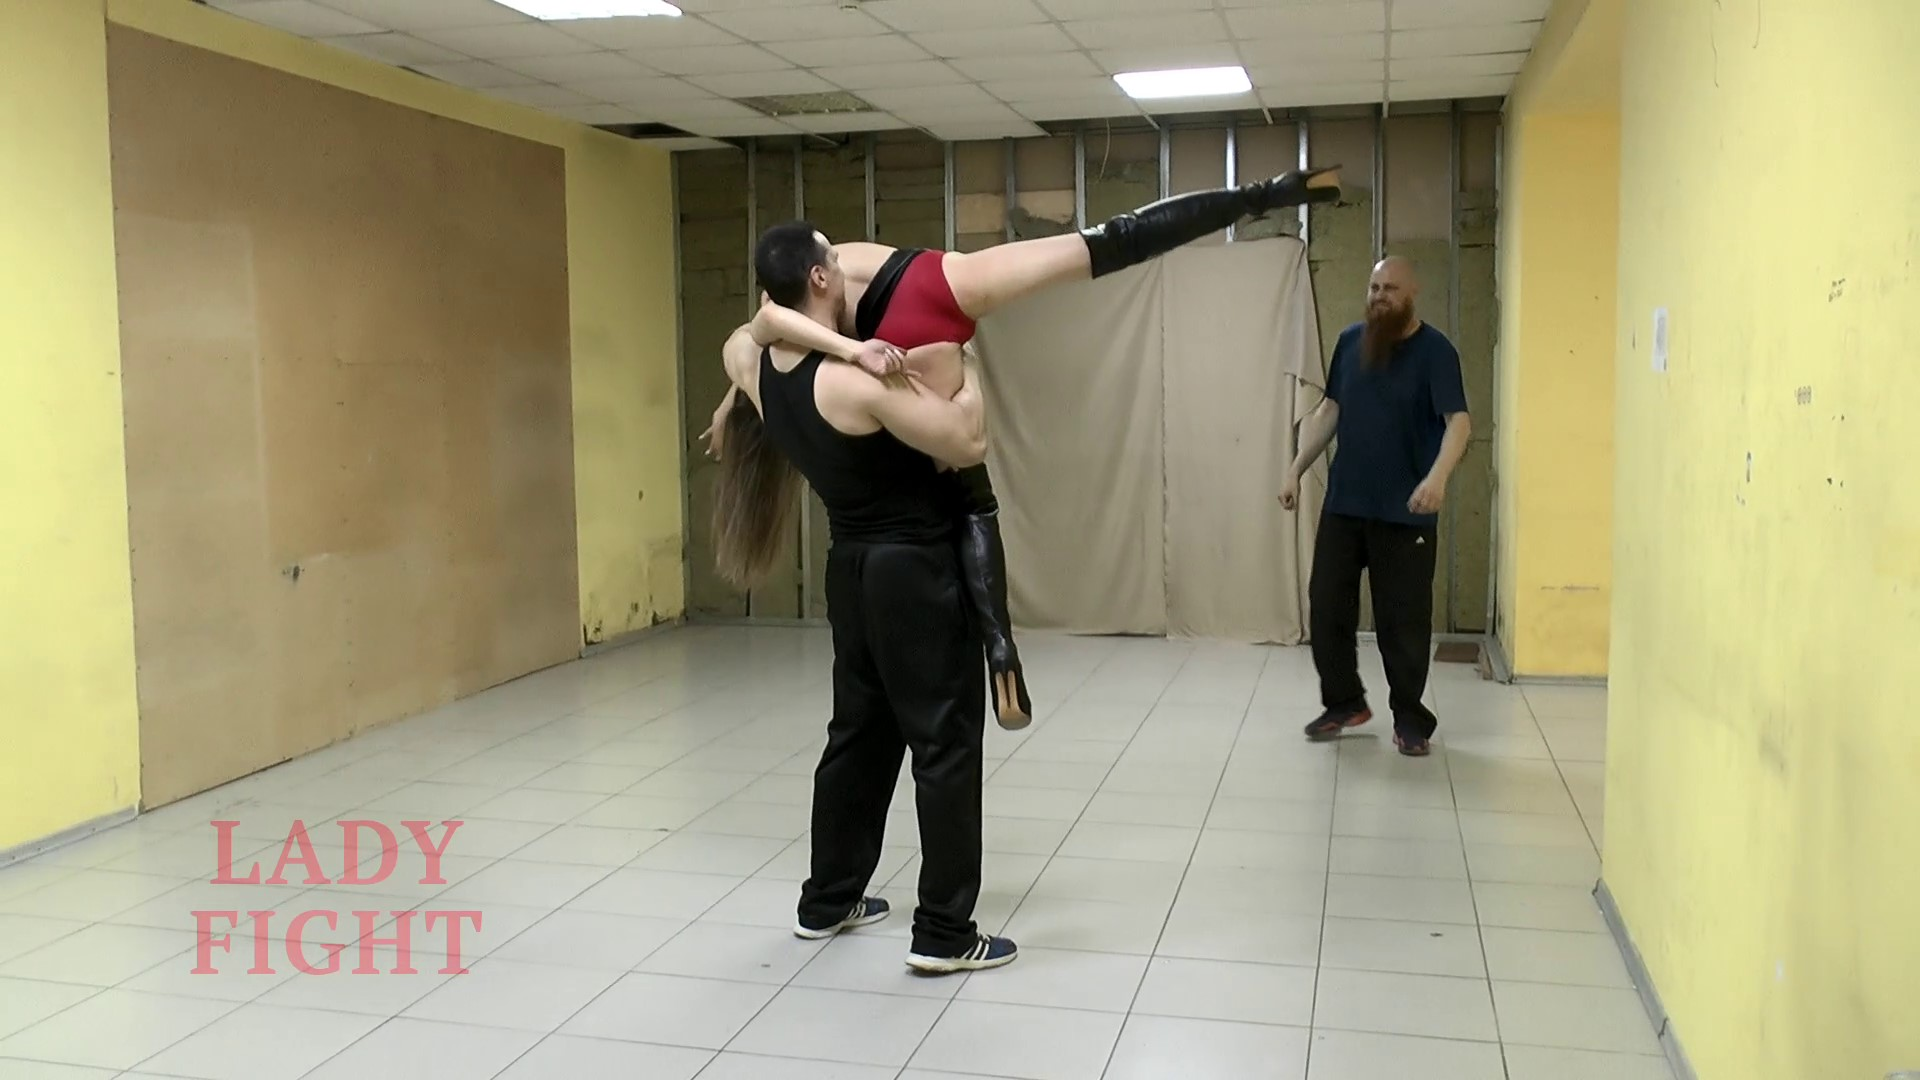 LADYFIGHT-Deadly-Wrestling-For-Lora-132